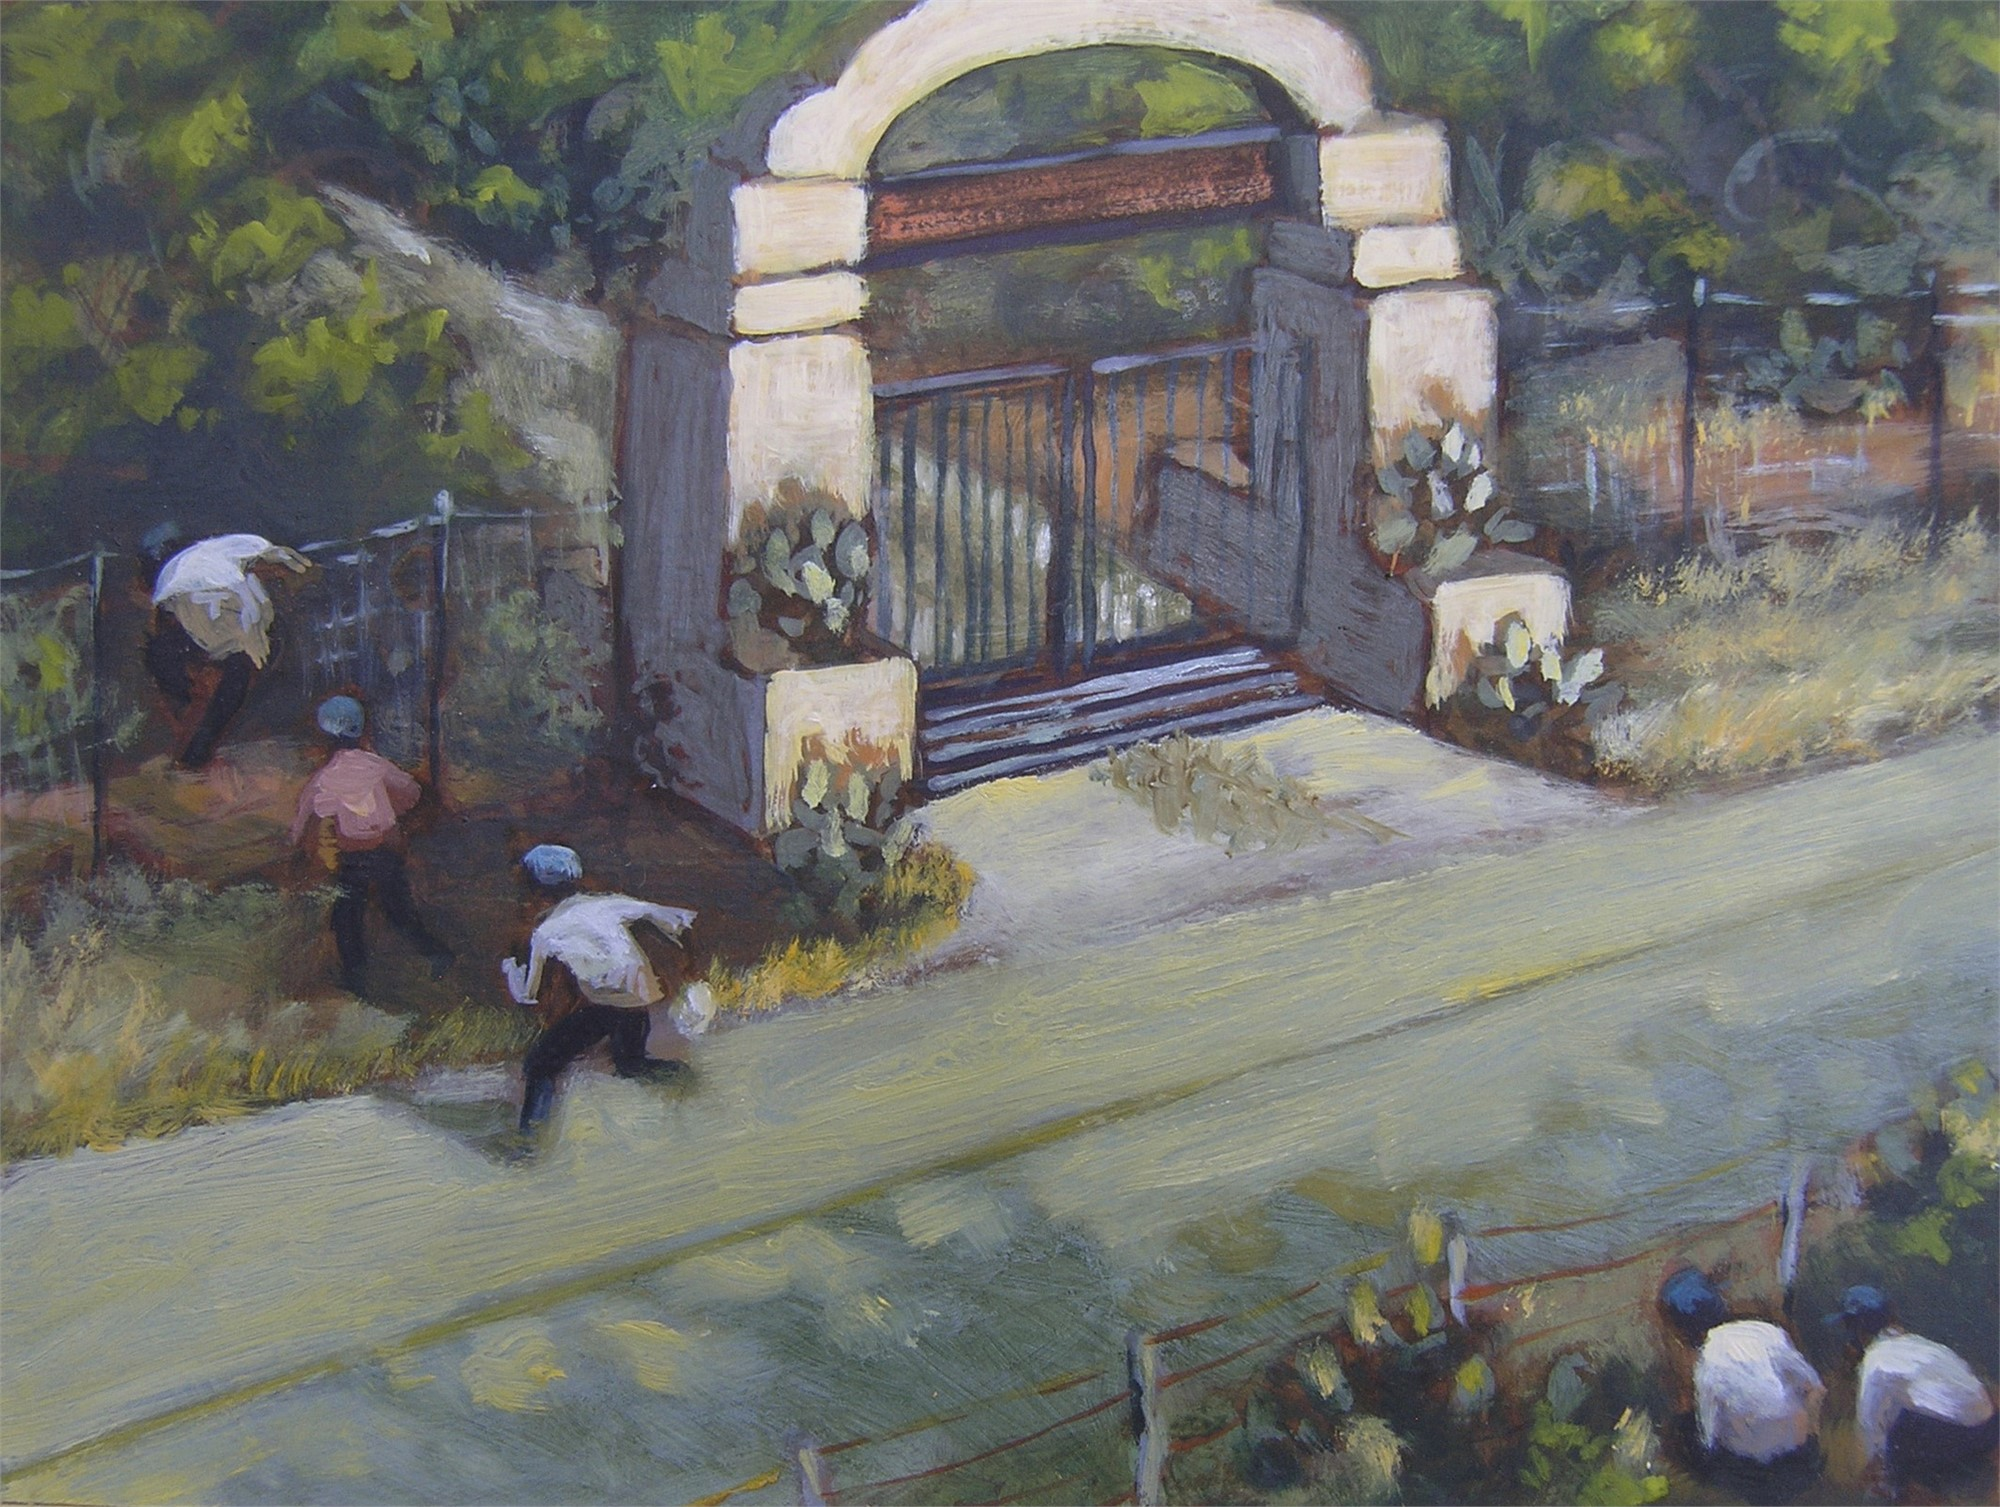 South Texas Perspective #4 by Janet Eager Krueger